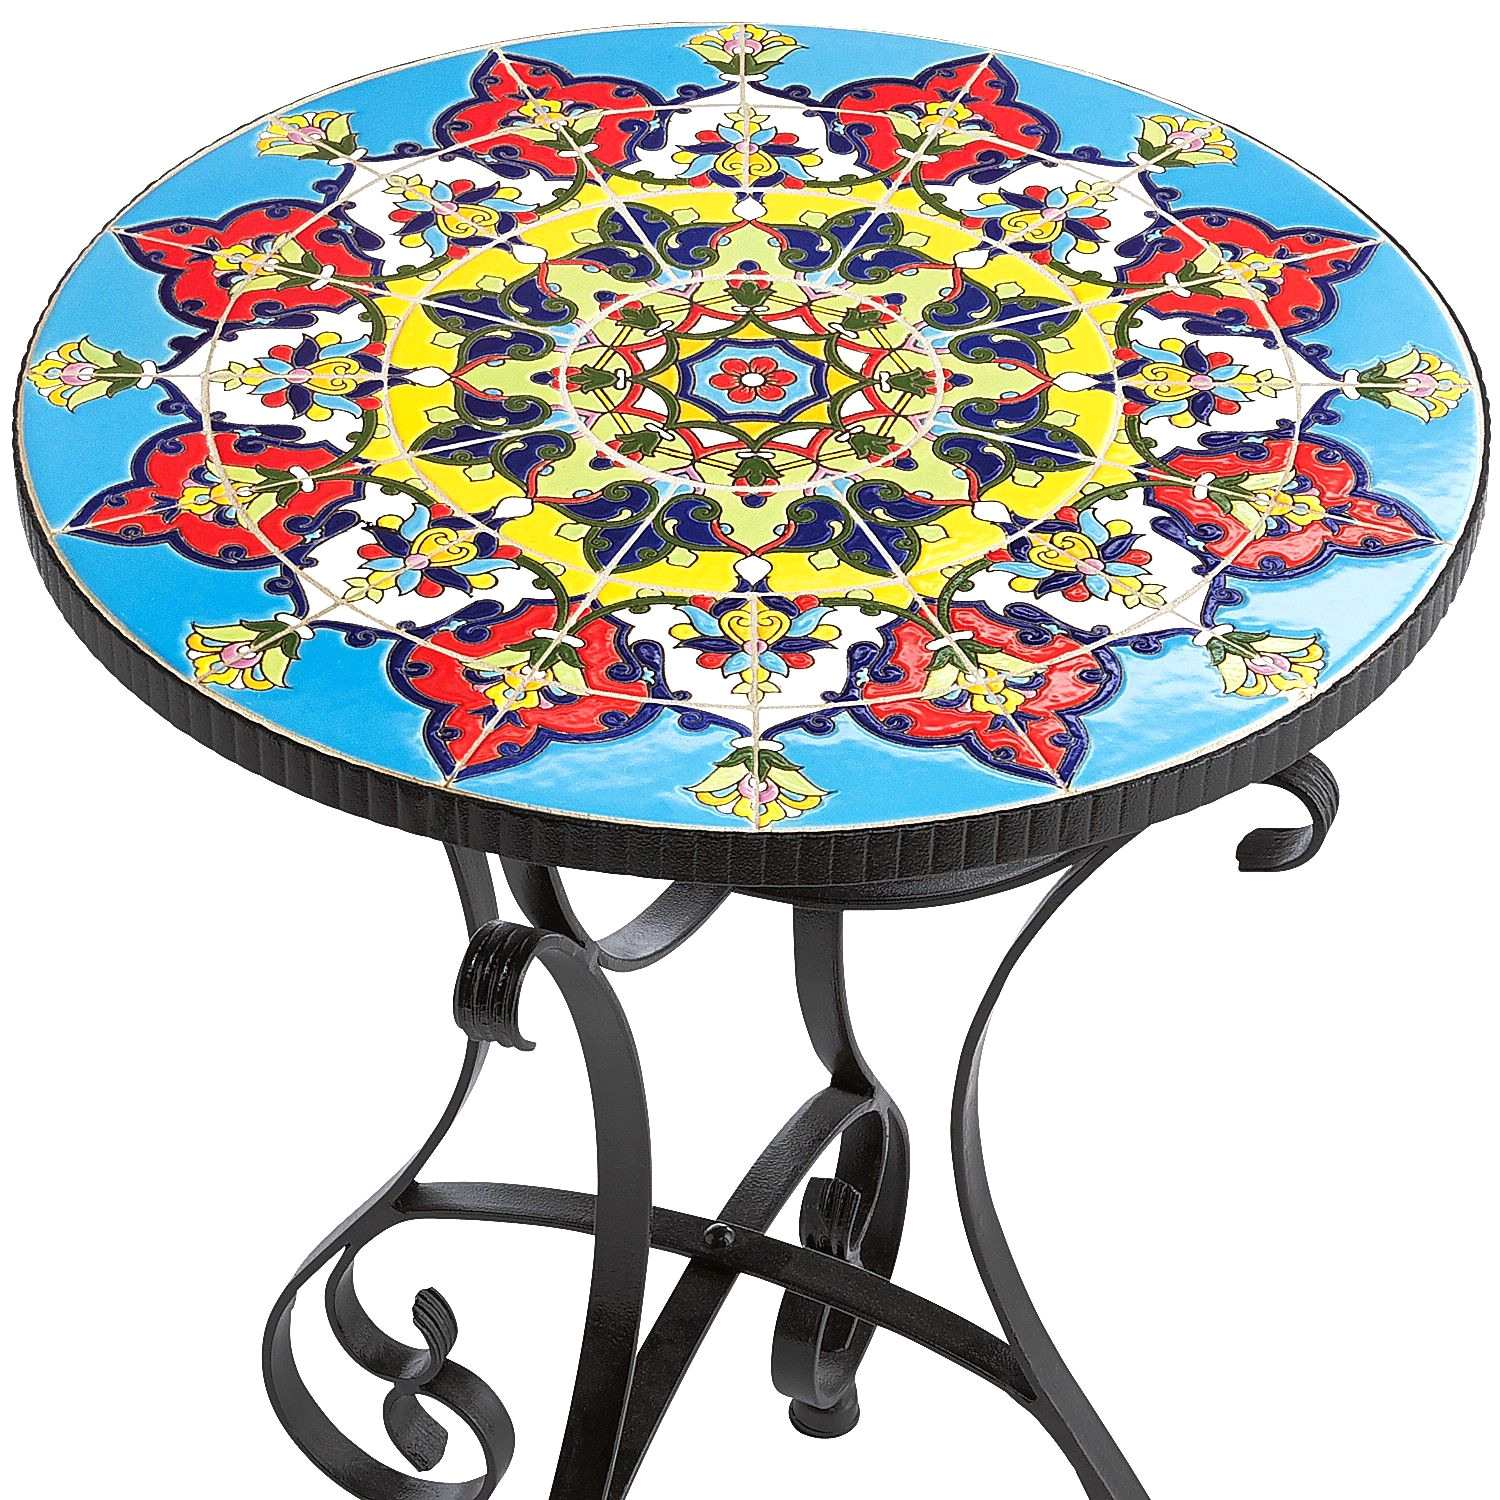 awesome mosaic patio side table from emilio accent threshold argos tables home goods furniture large round mirror unfinished end outdoor closet drink tiffany stained glass